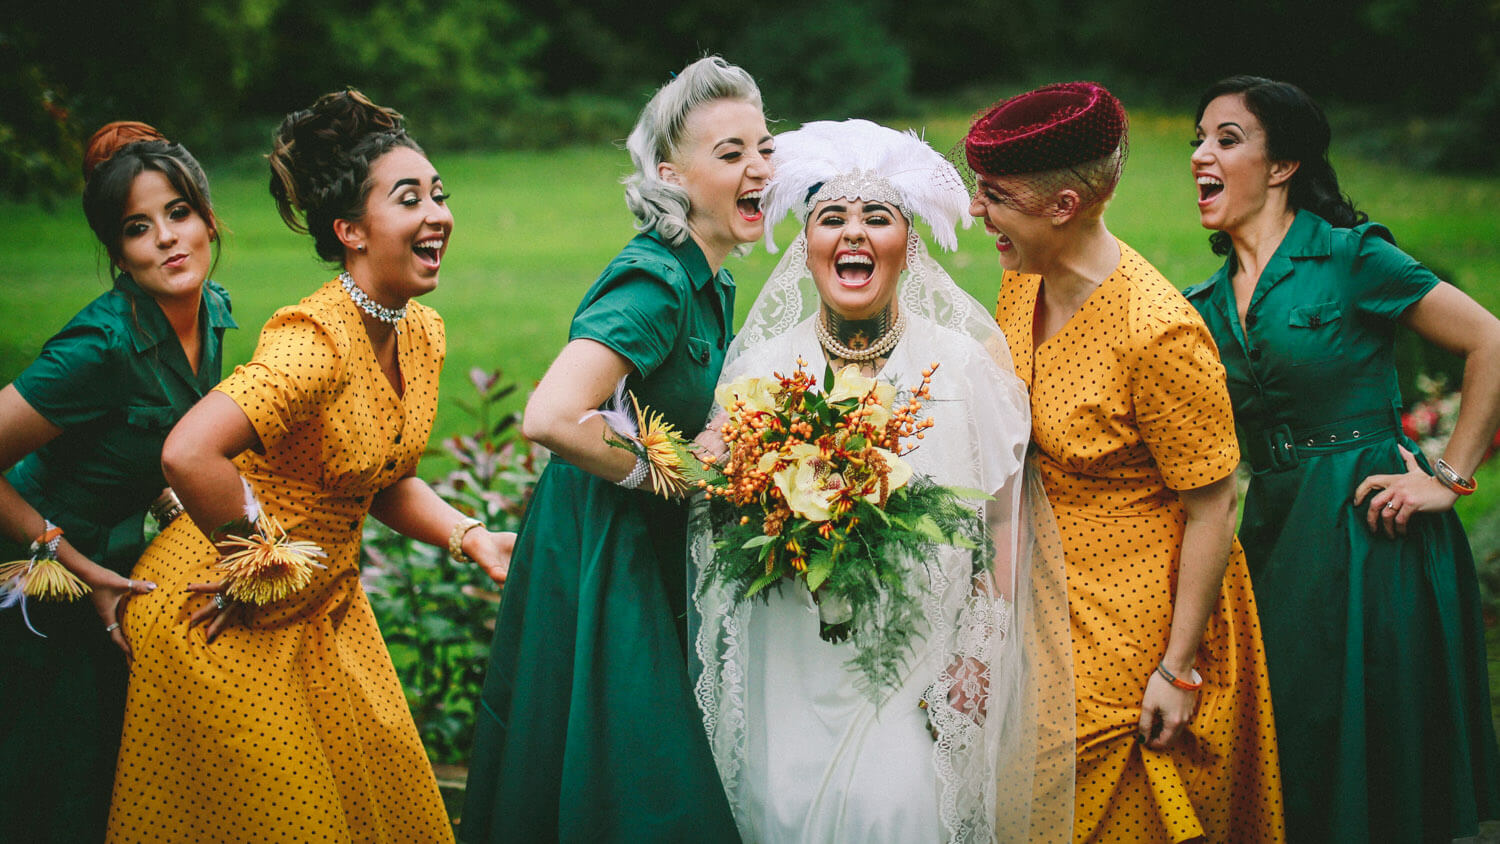 Ashfield House vintage wedding photography, Bride and bridesmaid laughing wearing yellow and green dresses